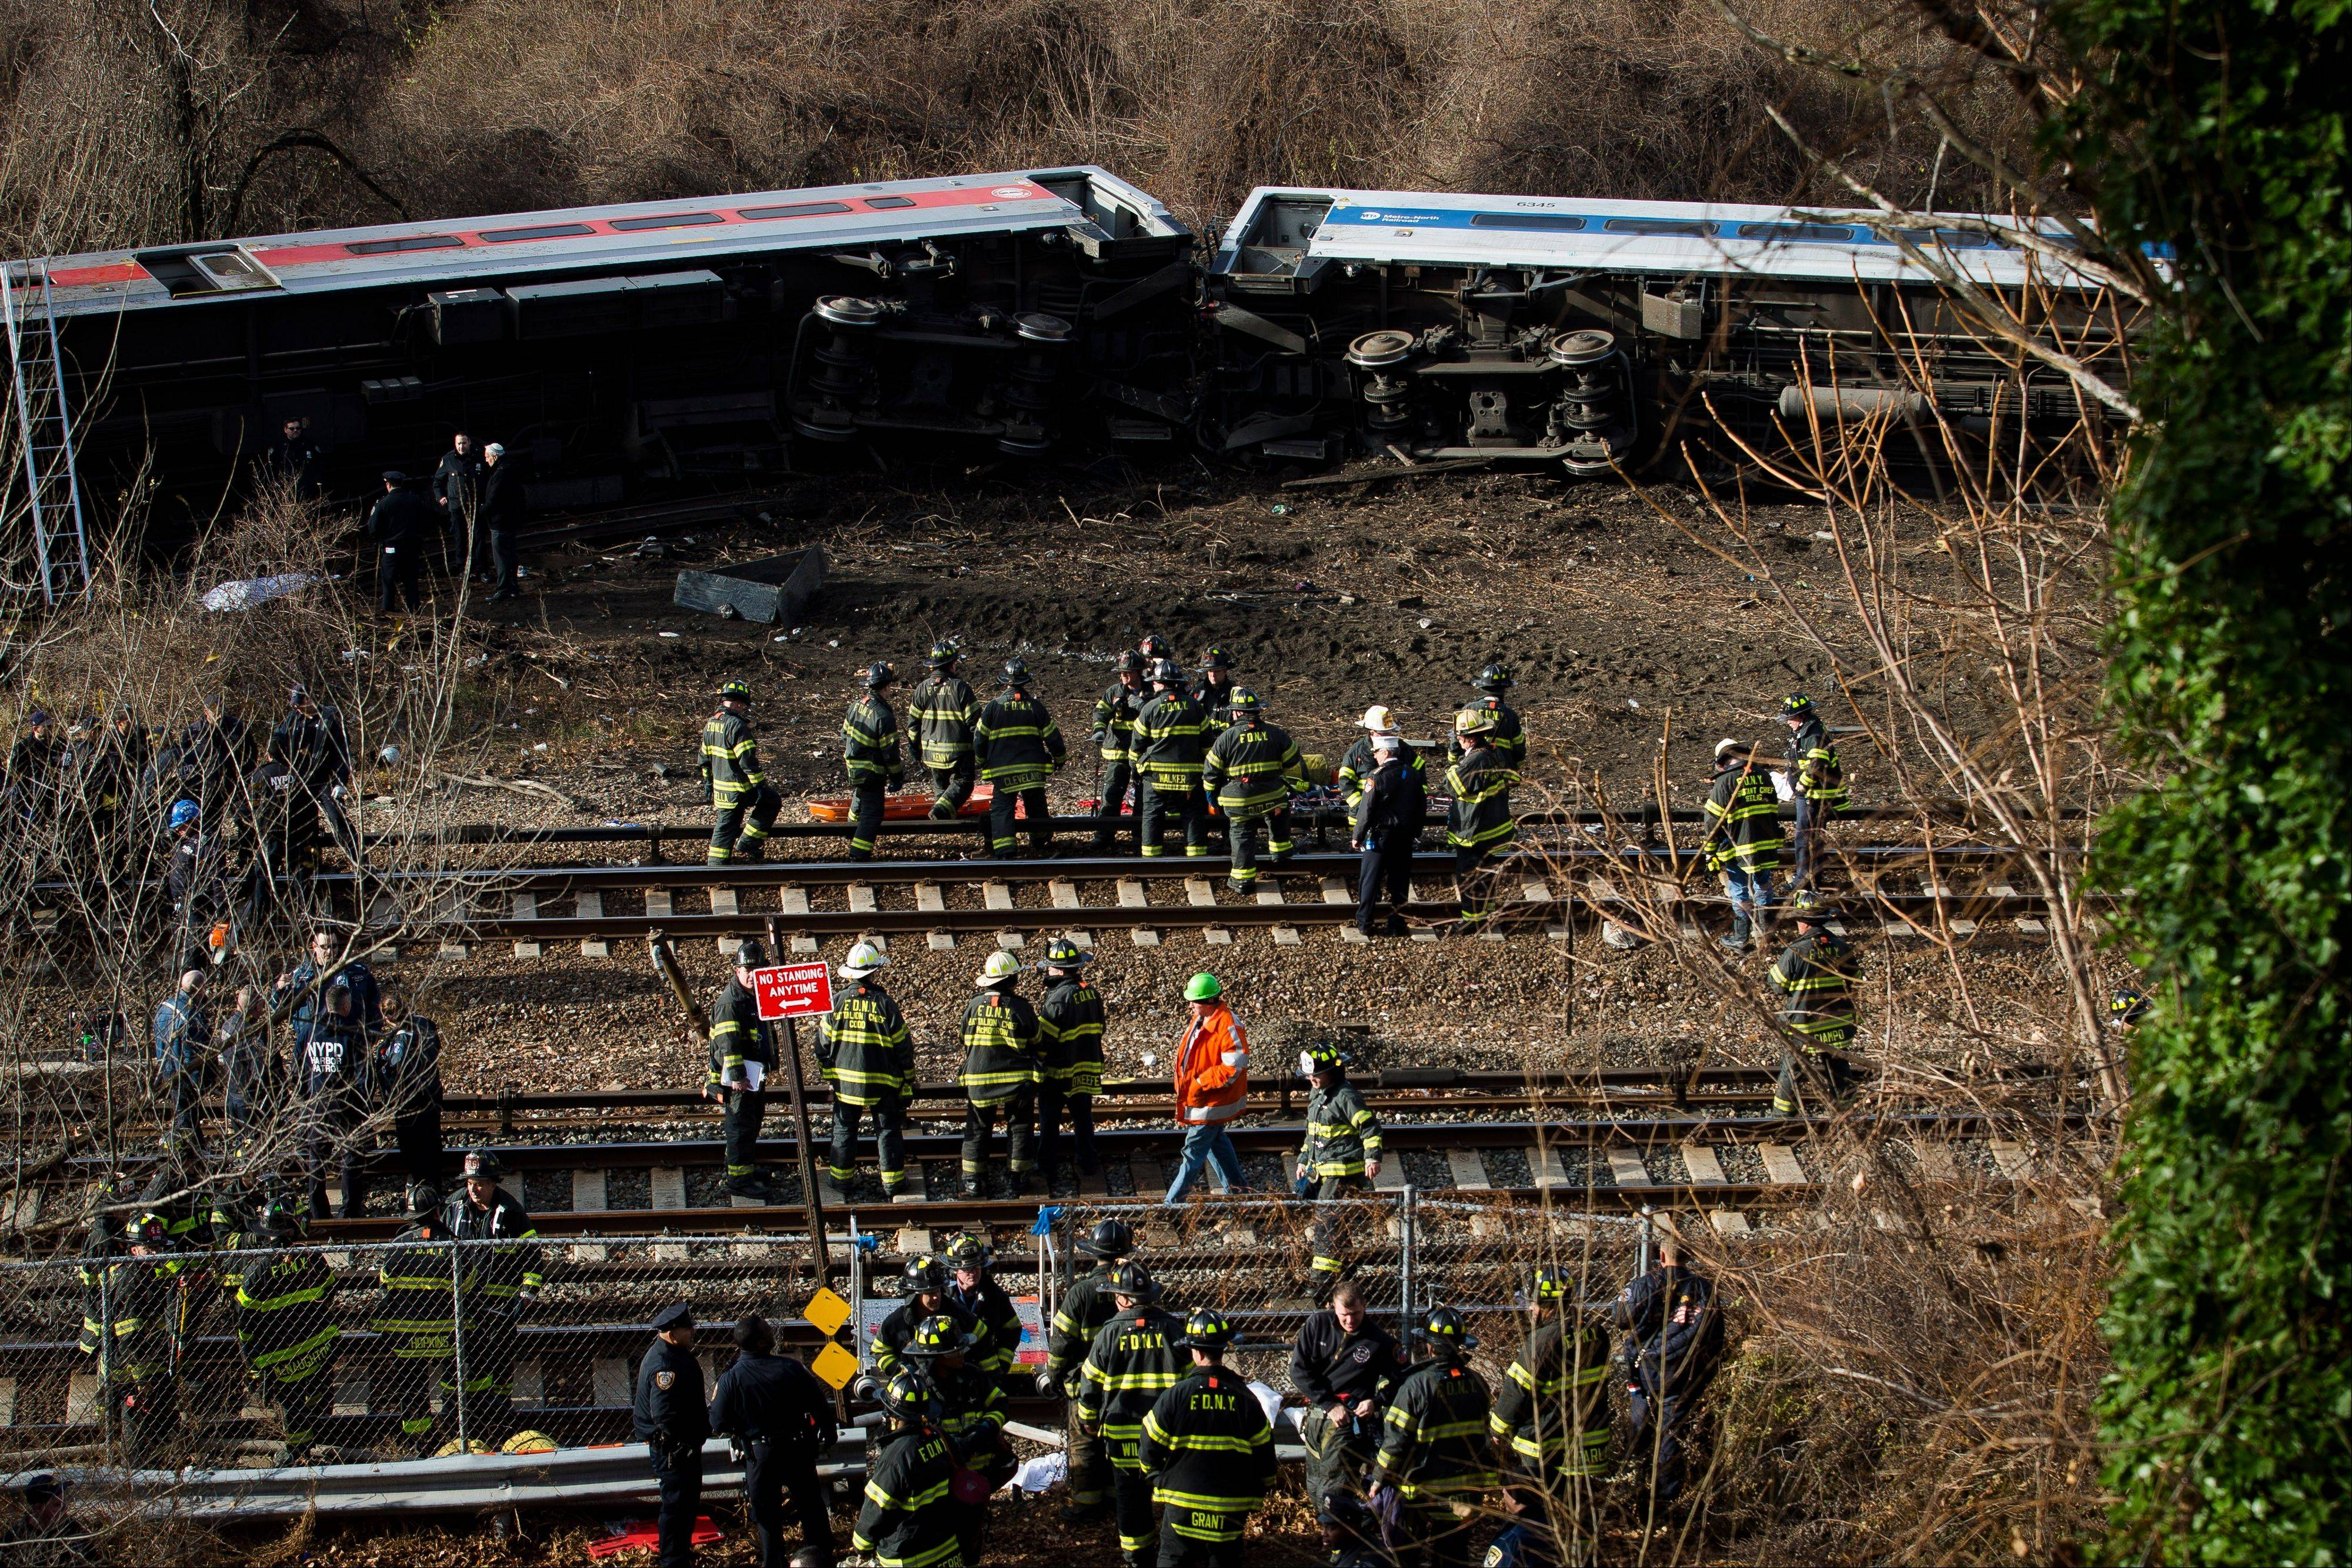 Emergency personnel respond to the scene of a Metro-North passenger train derailment in the Bronx borough of New York, Sunday.